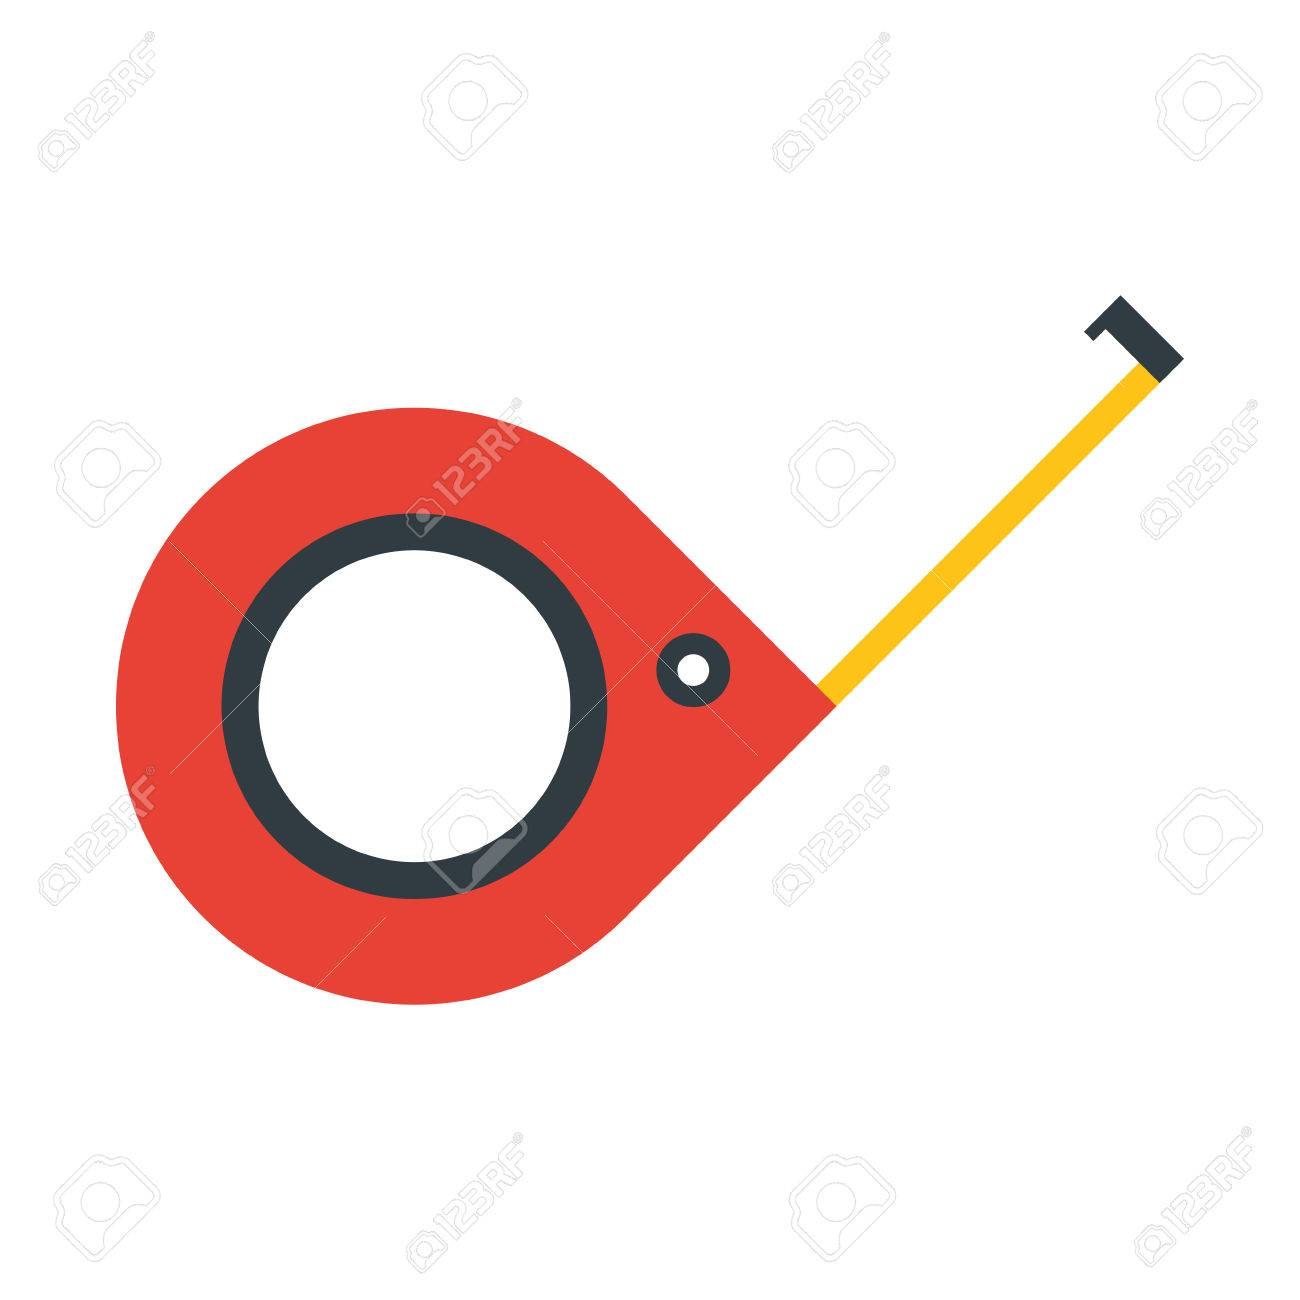 1300x1300 Meter Tool Construction Repair Icon. Flat And Isolated Design